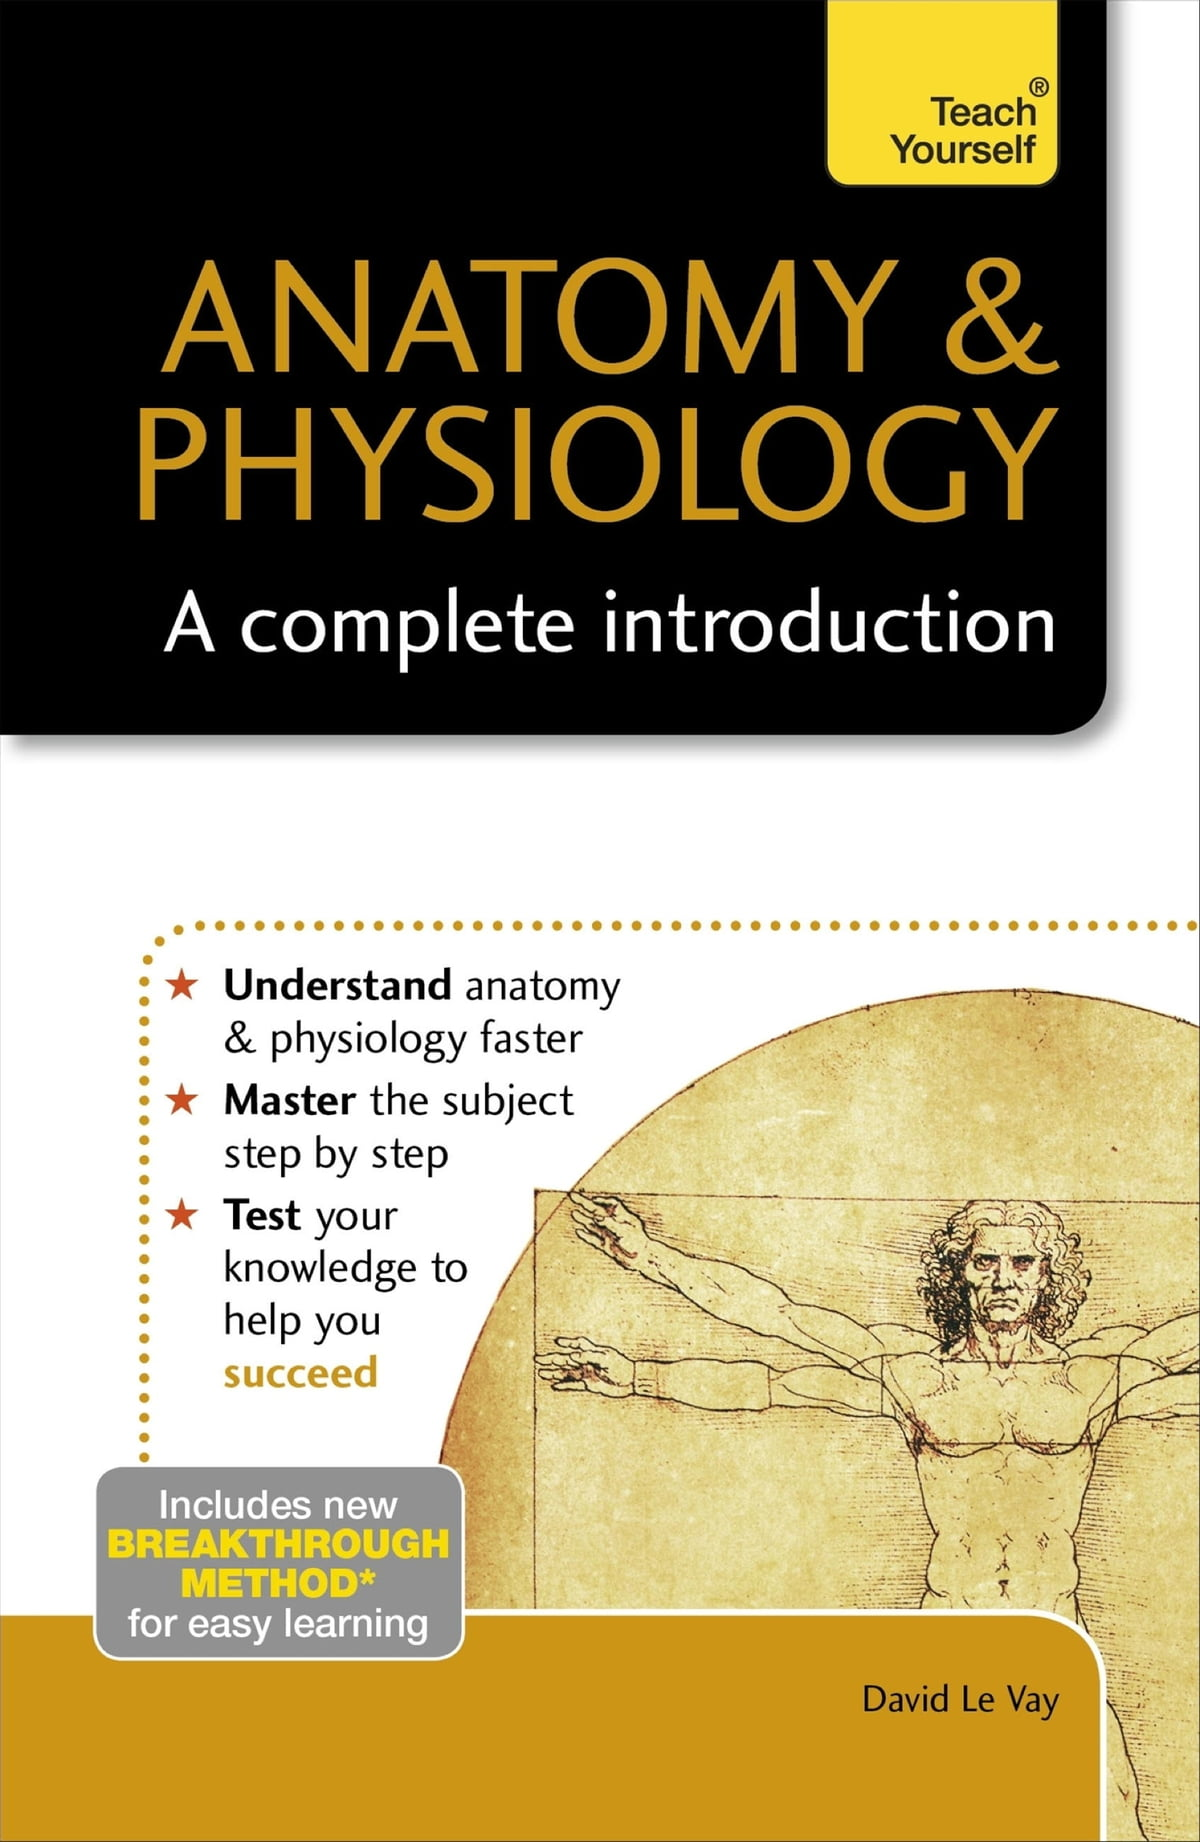 Anatomy & Physiology: A Complete Introduction: Teach Yourself ebook by  David Le Vay - Rakuten Kobo